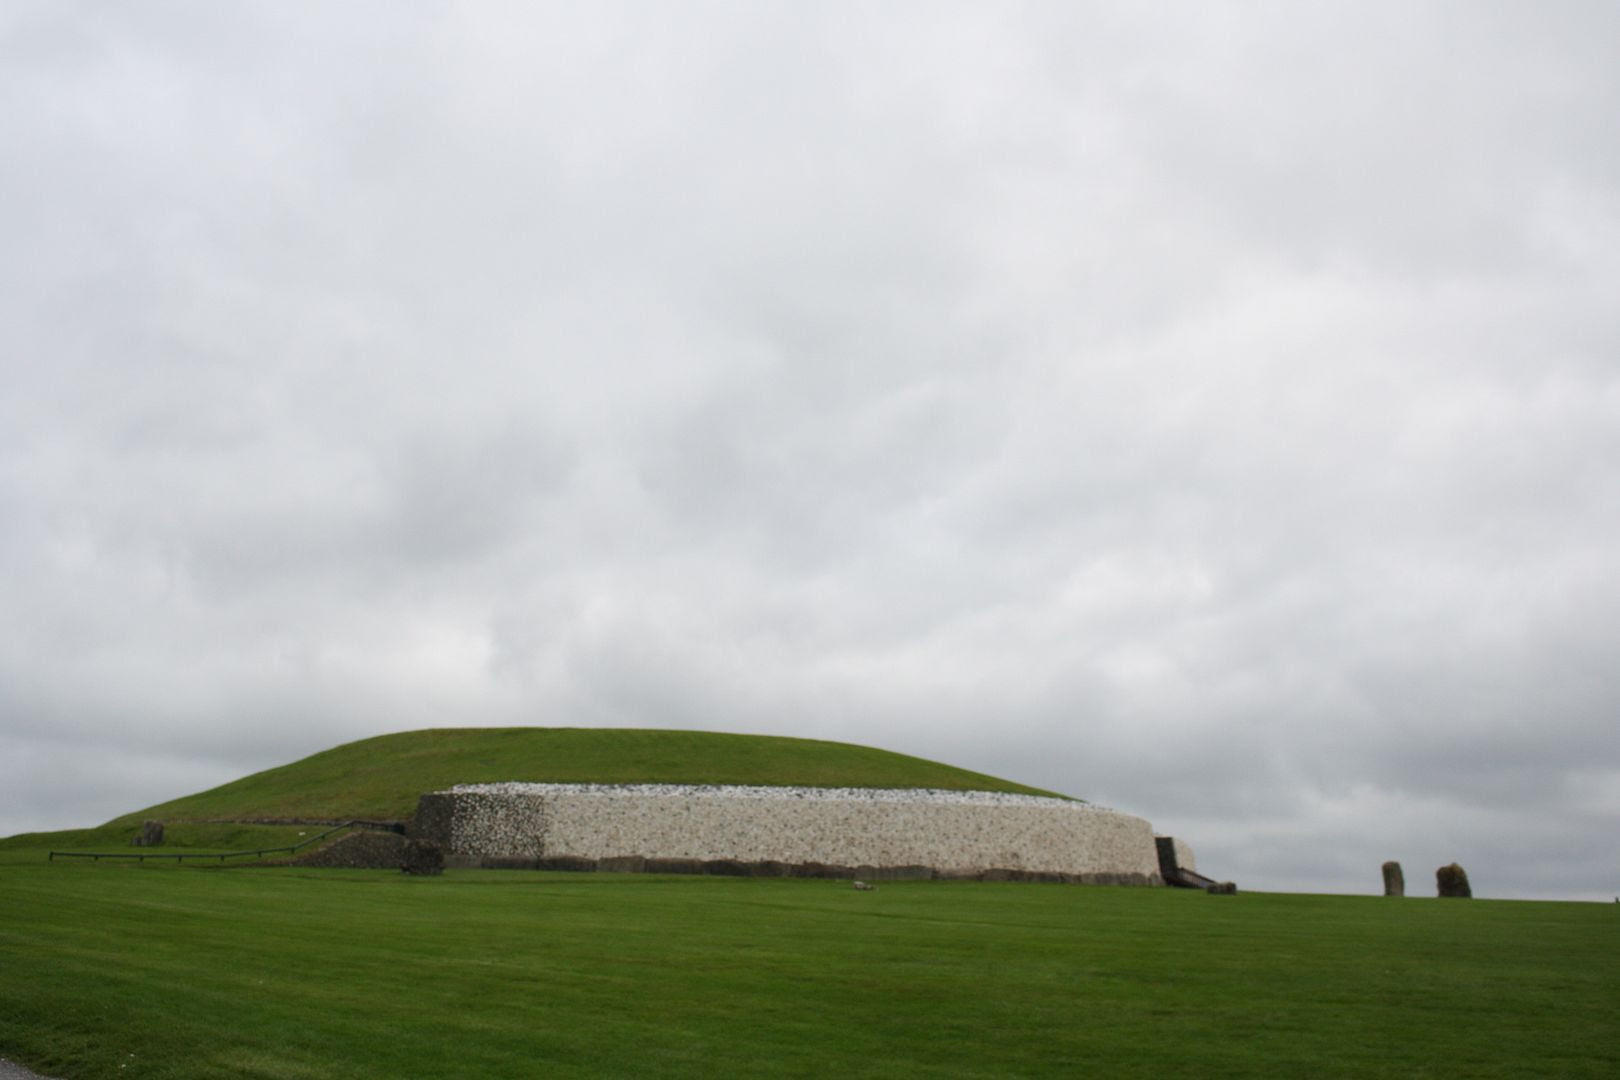 Newgrange at Bru na Boinne, Ireland photo IMG_4246_zpsltkfniju.jpg